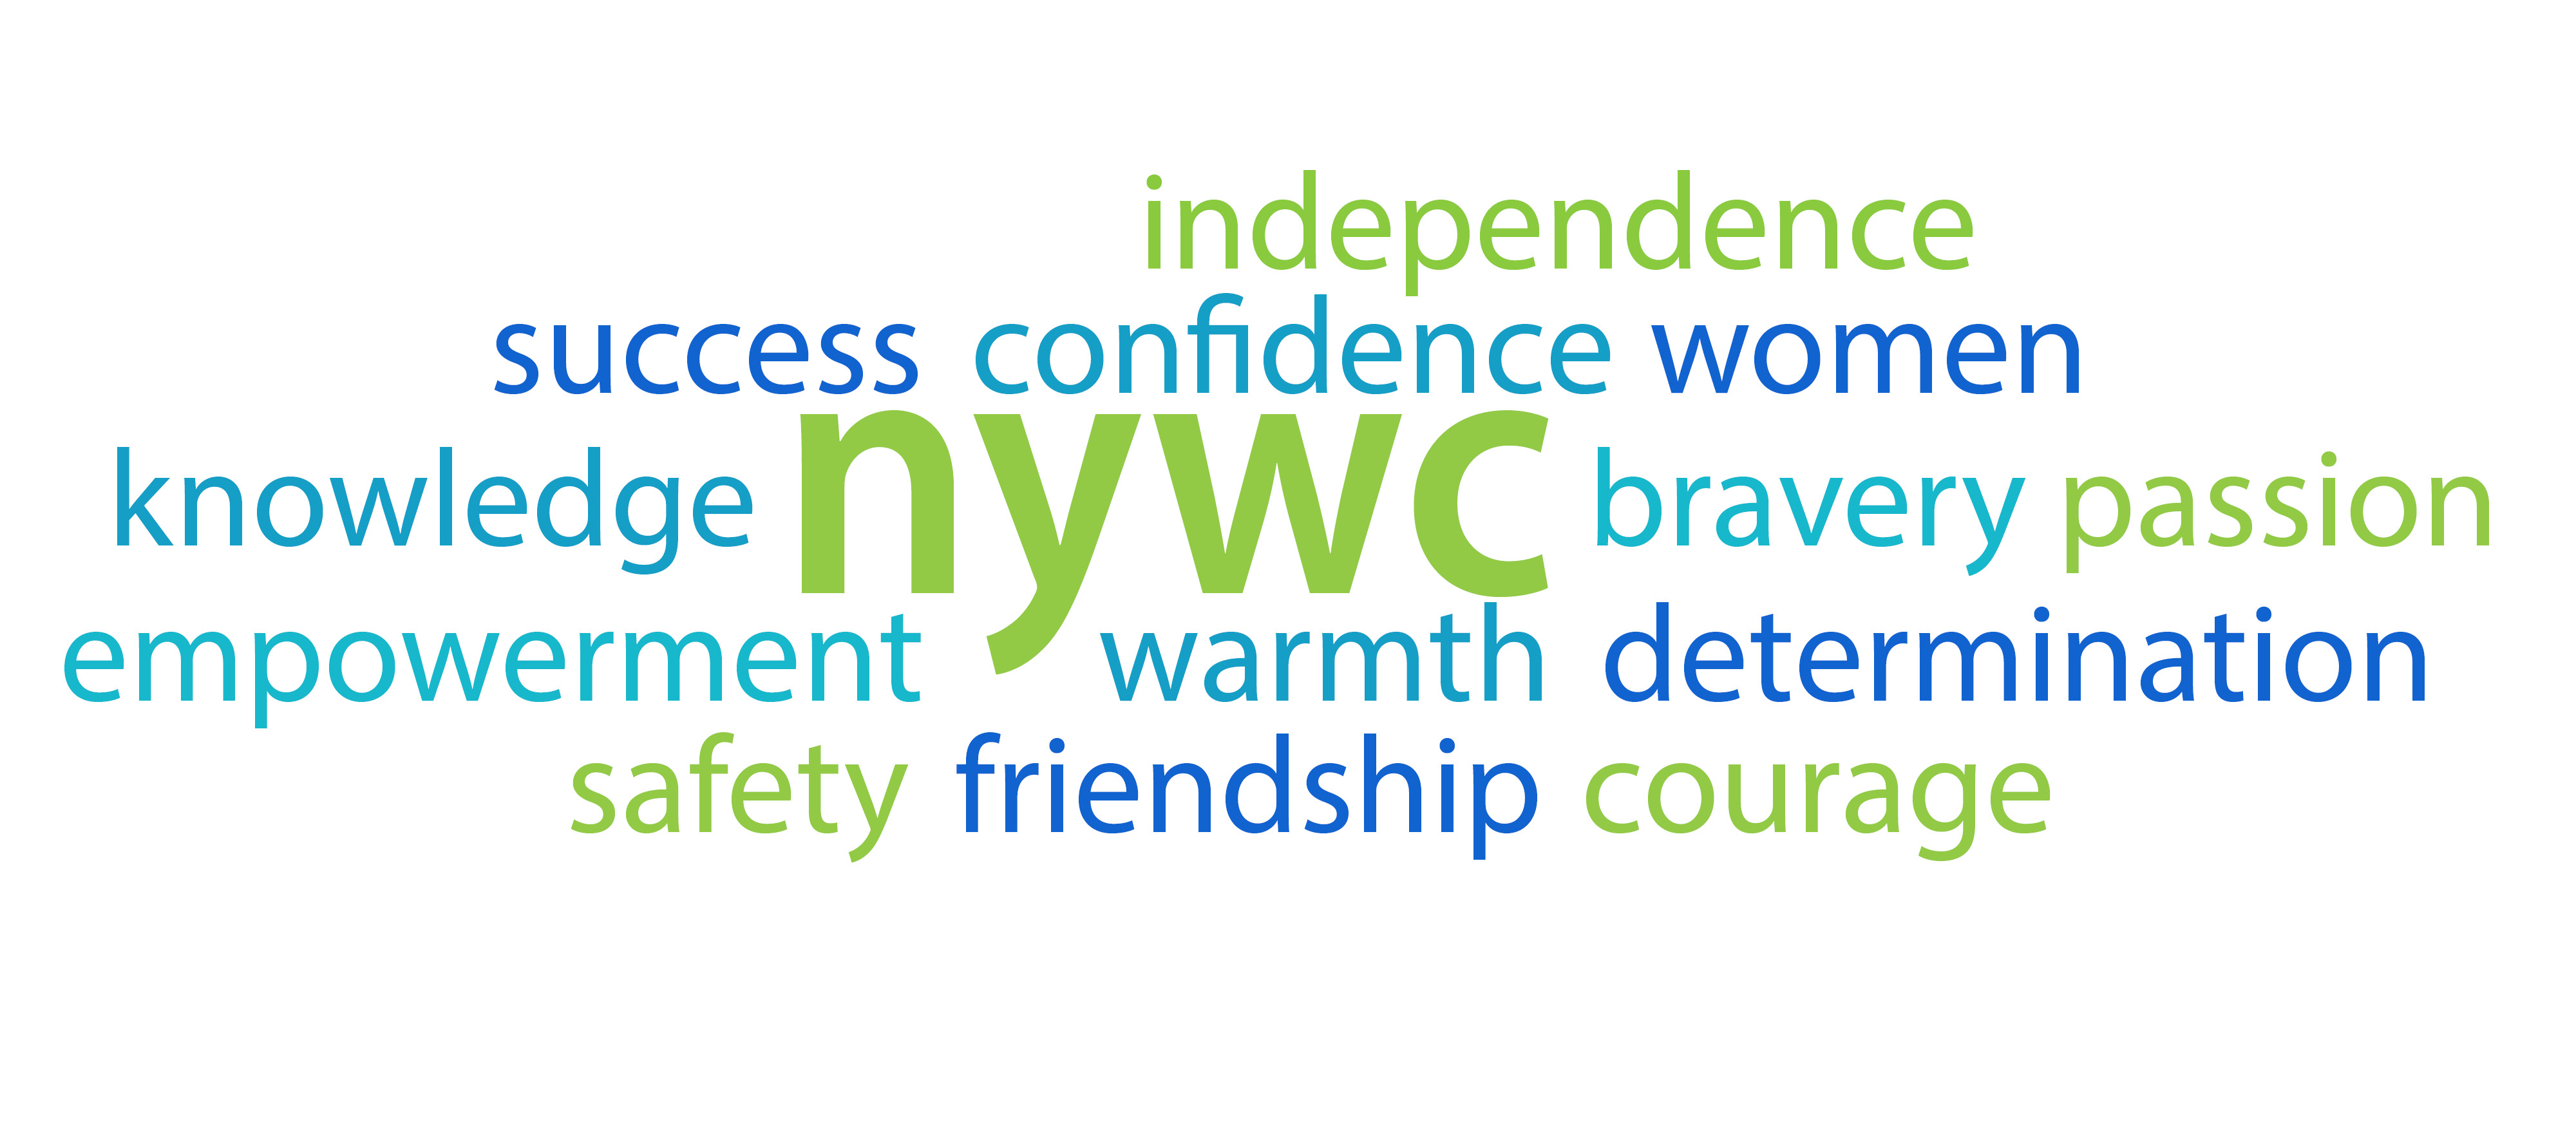 nywc: independence success confidence women knowledge bravery passion empowerment warmth determination safety friendship courage